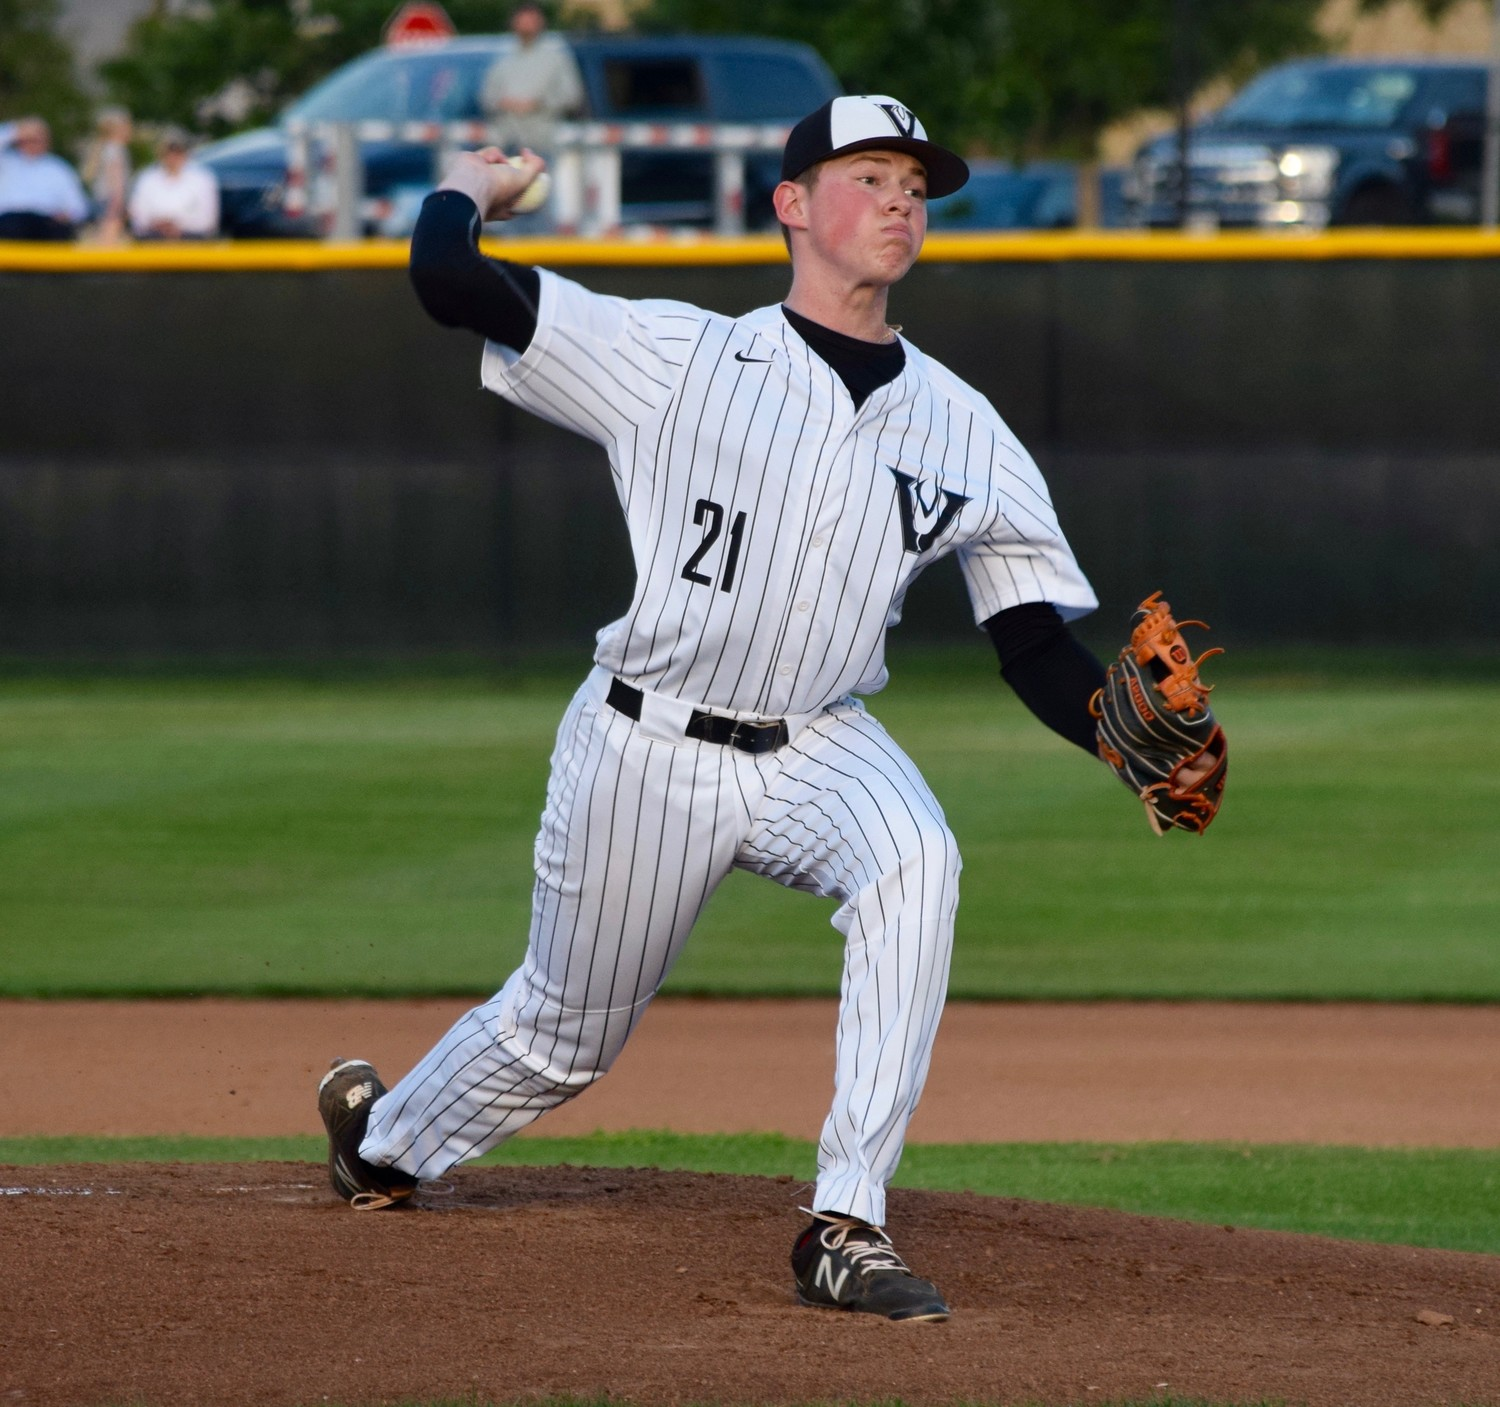 Alex Maatz pitched four innings with three strikeouts and Vandegrift lost 6-1 to San Antonio Reagan in the first game of the playoffs Wednesday night.